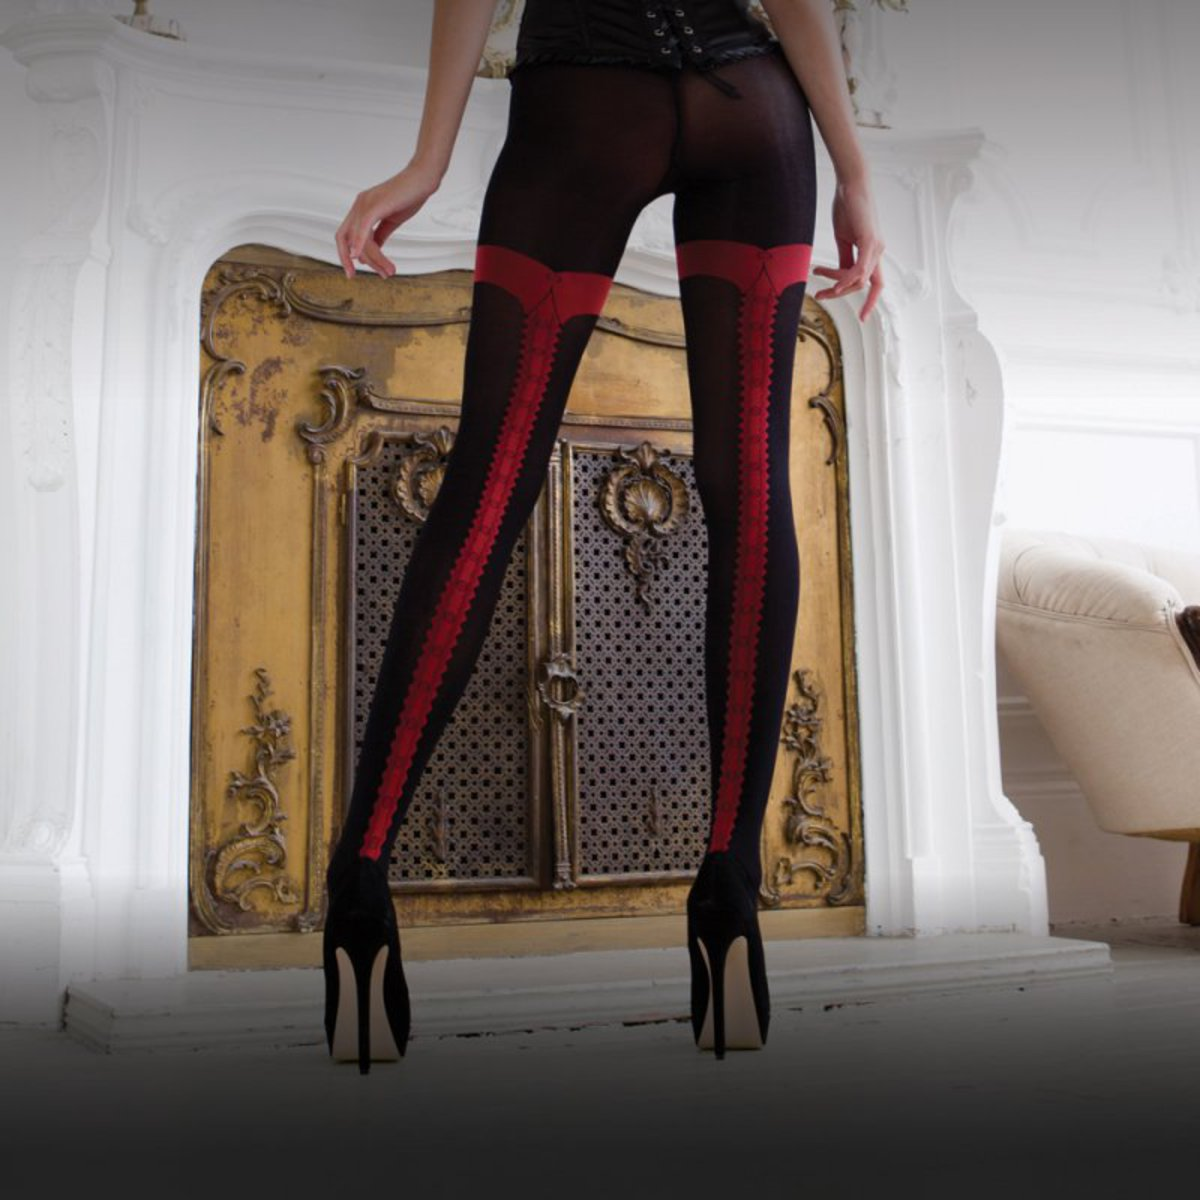 punčocháče LEGWEAR - charley opaque - black with red seam - OHVCTG2BL1 M